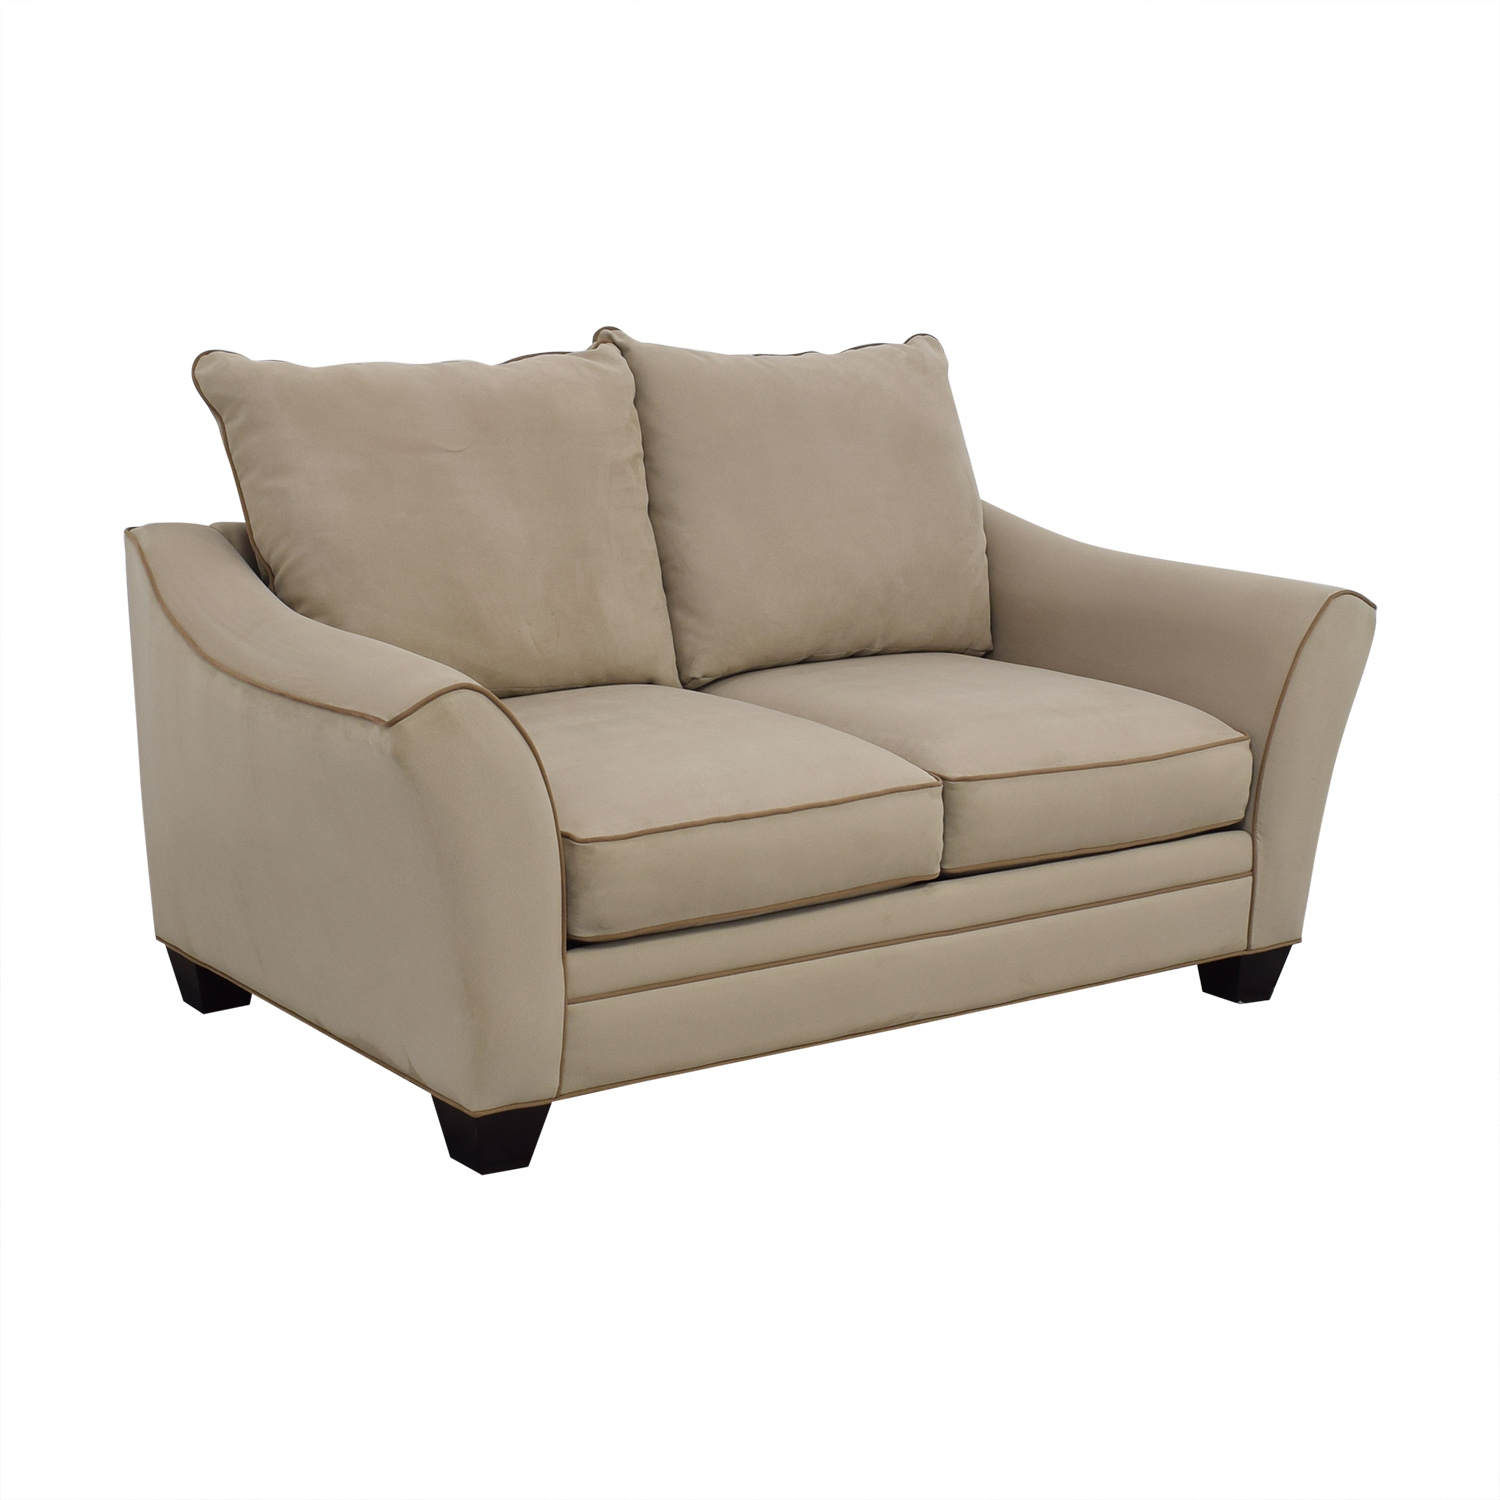 Raymour & Flanigan Raymour & Flanigan Blairwood Microfiber Loveseat on sale